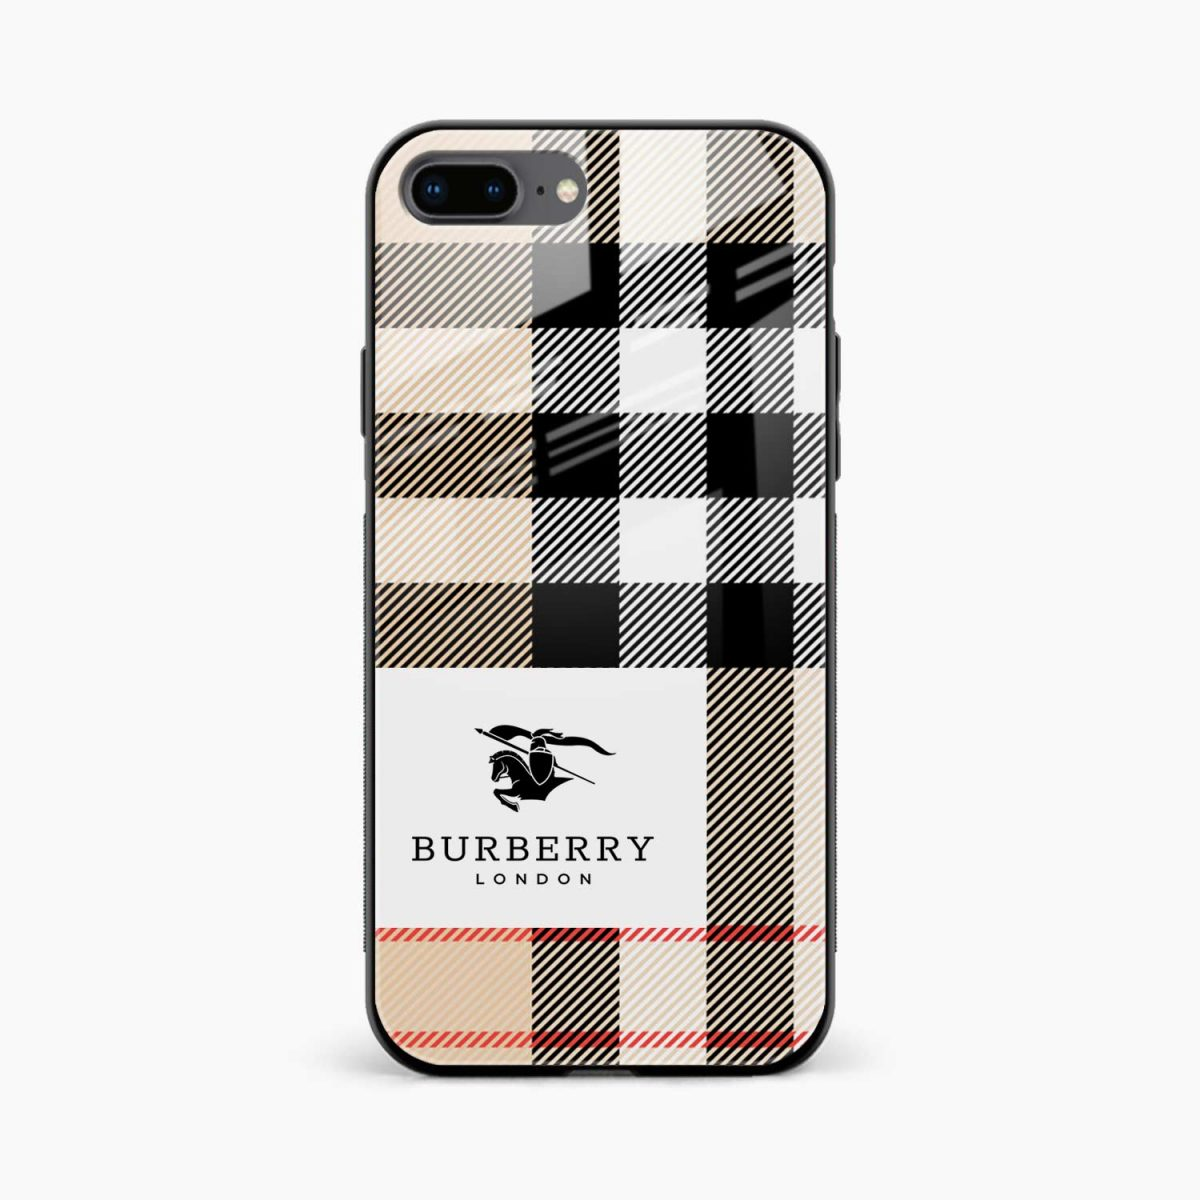 burberry cross lines pattern front view apple iphone 7 8 plus back cover